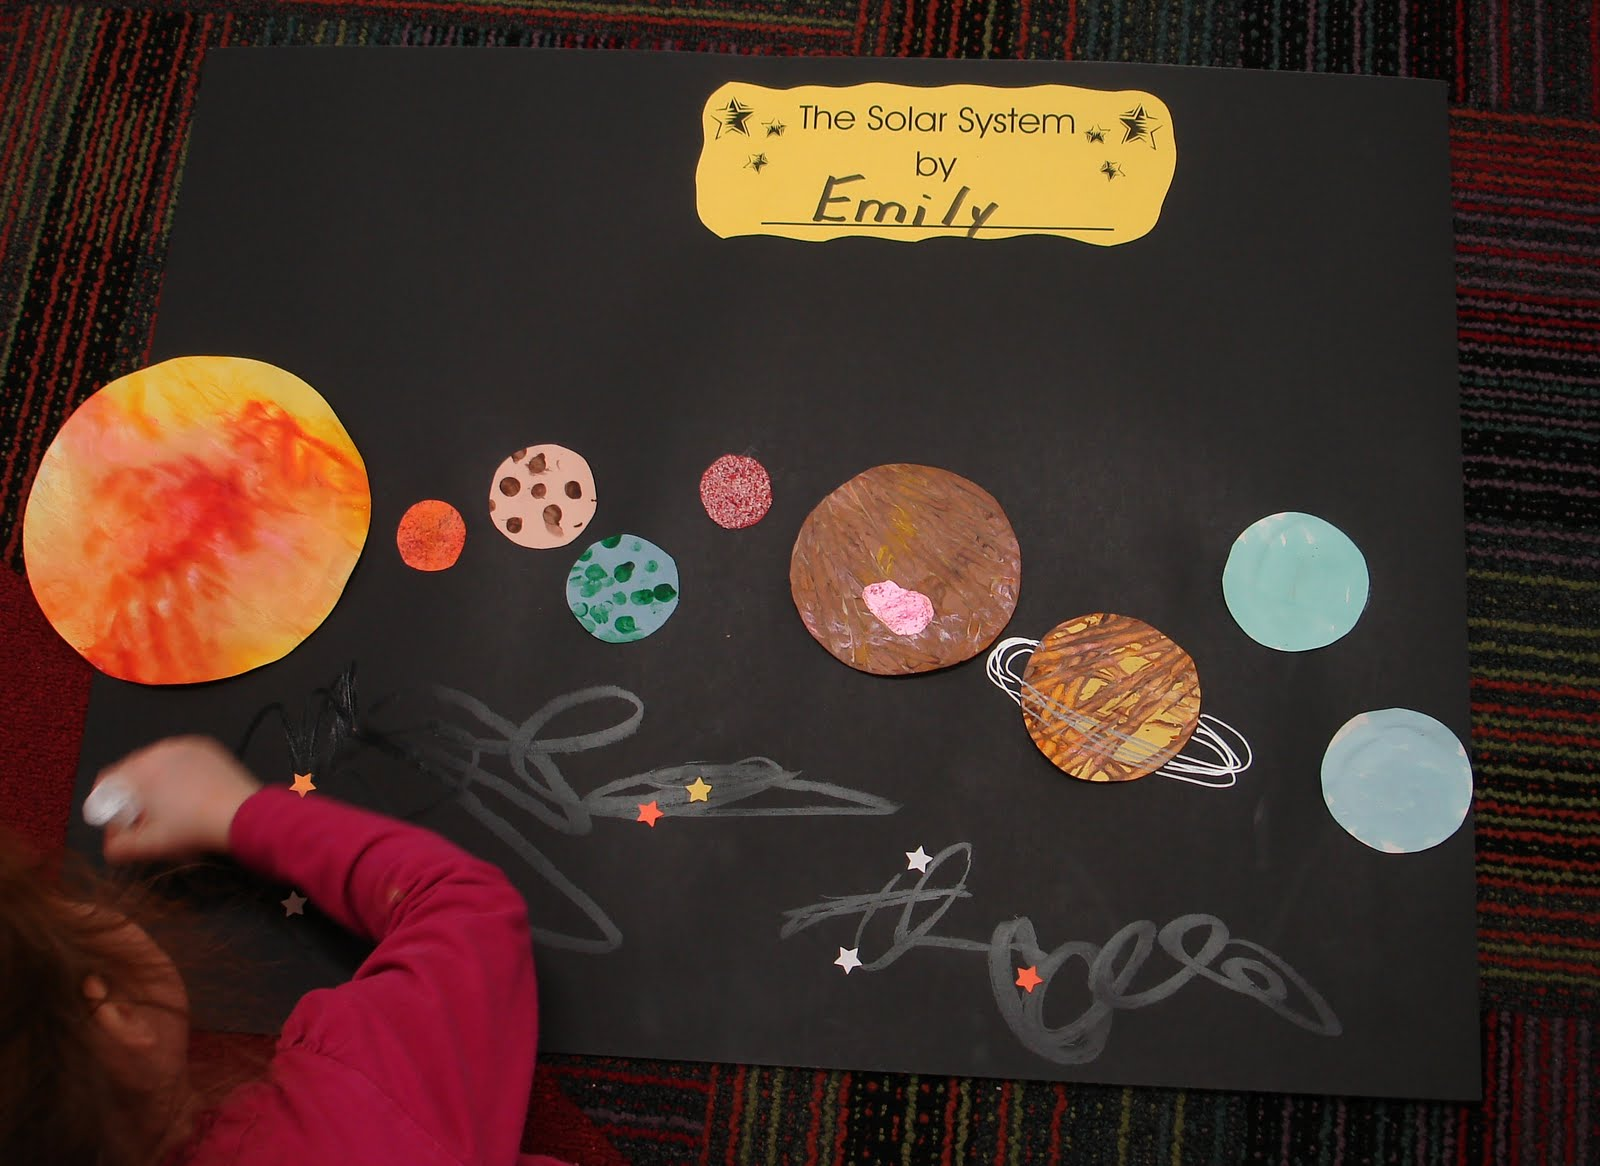 solar system project ideas - photo #30